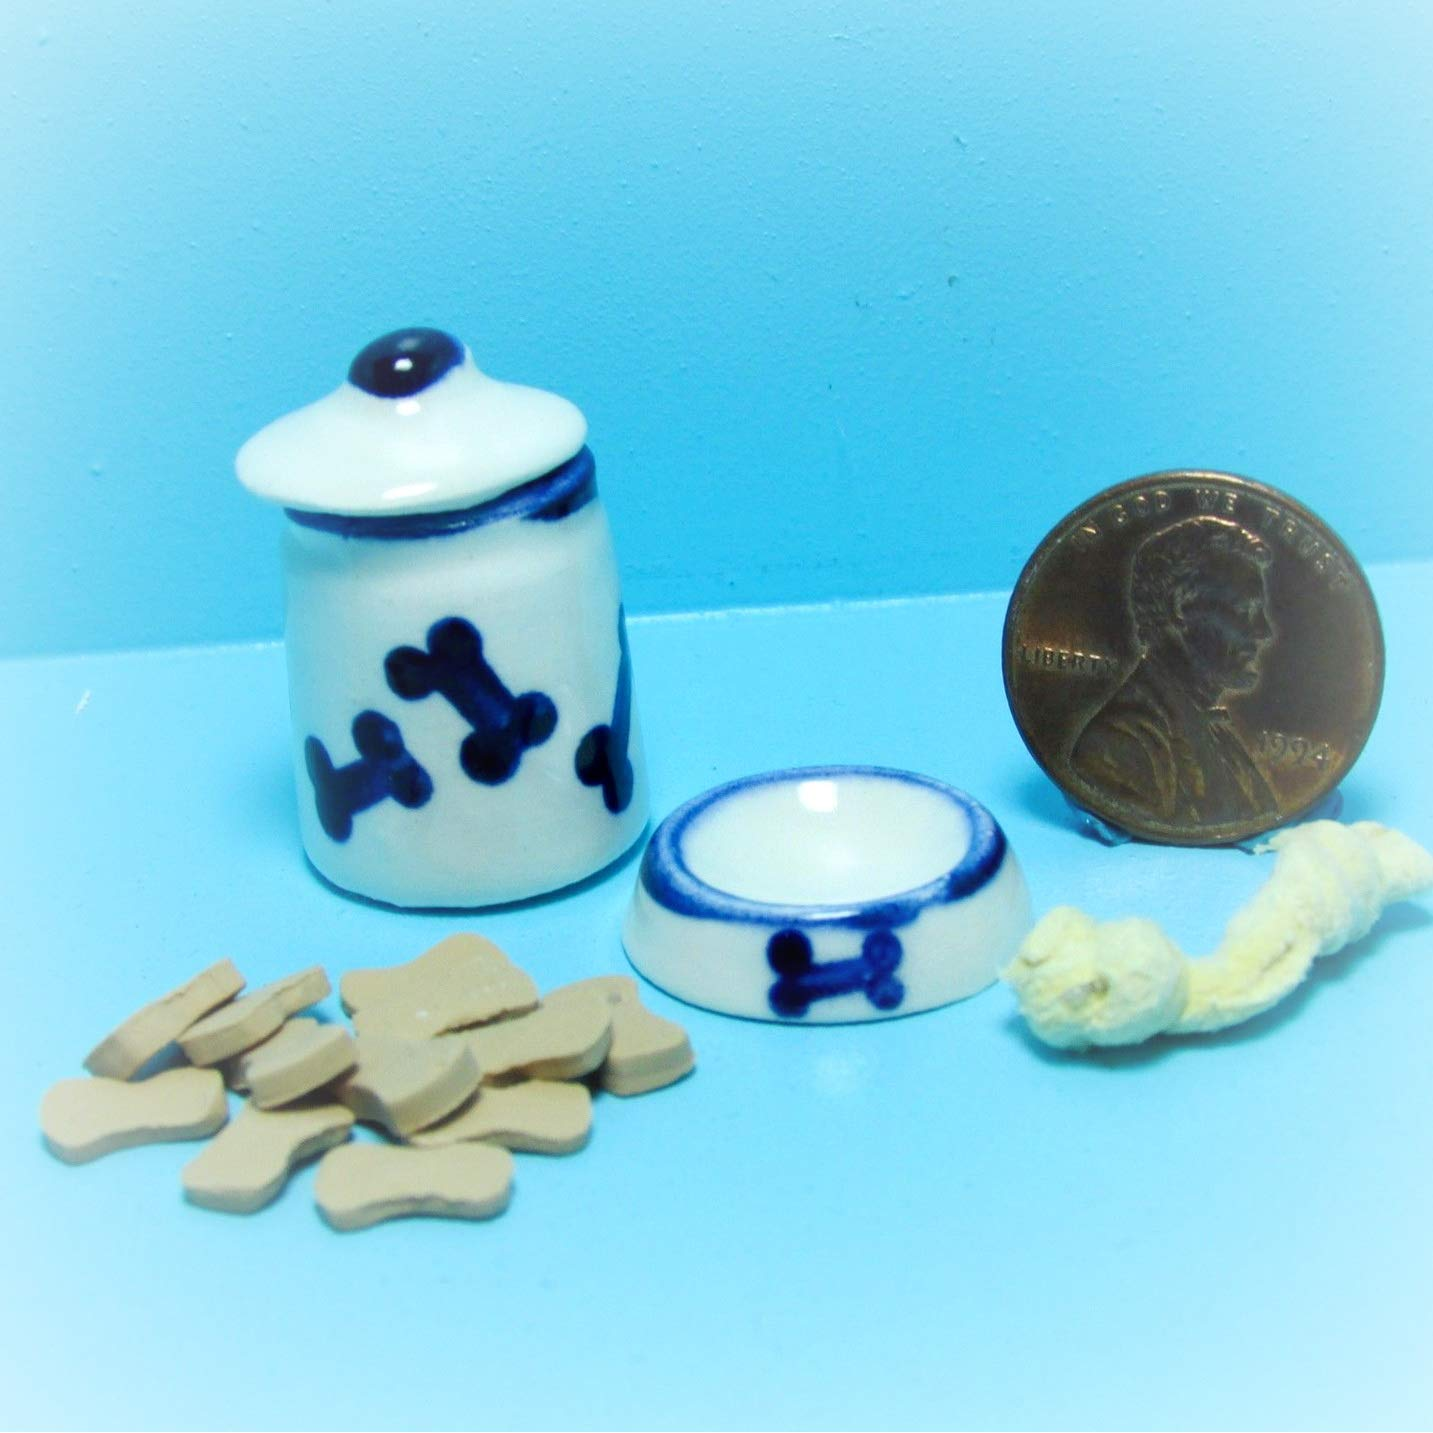 Dollhouse Dog Treats Canister Matching Bowl Toy Set KL2312 - Miniature Scene Supplies Your Fairy Garden - Doll House - Outdoor House Decor by New Garden Miniature (Image #1)